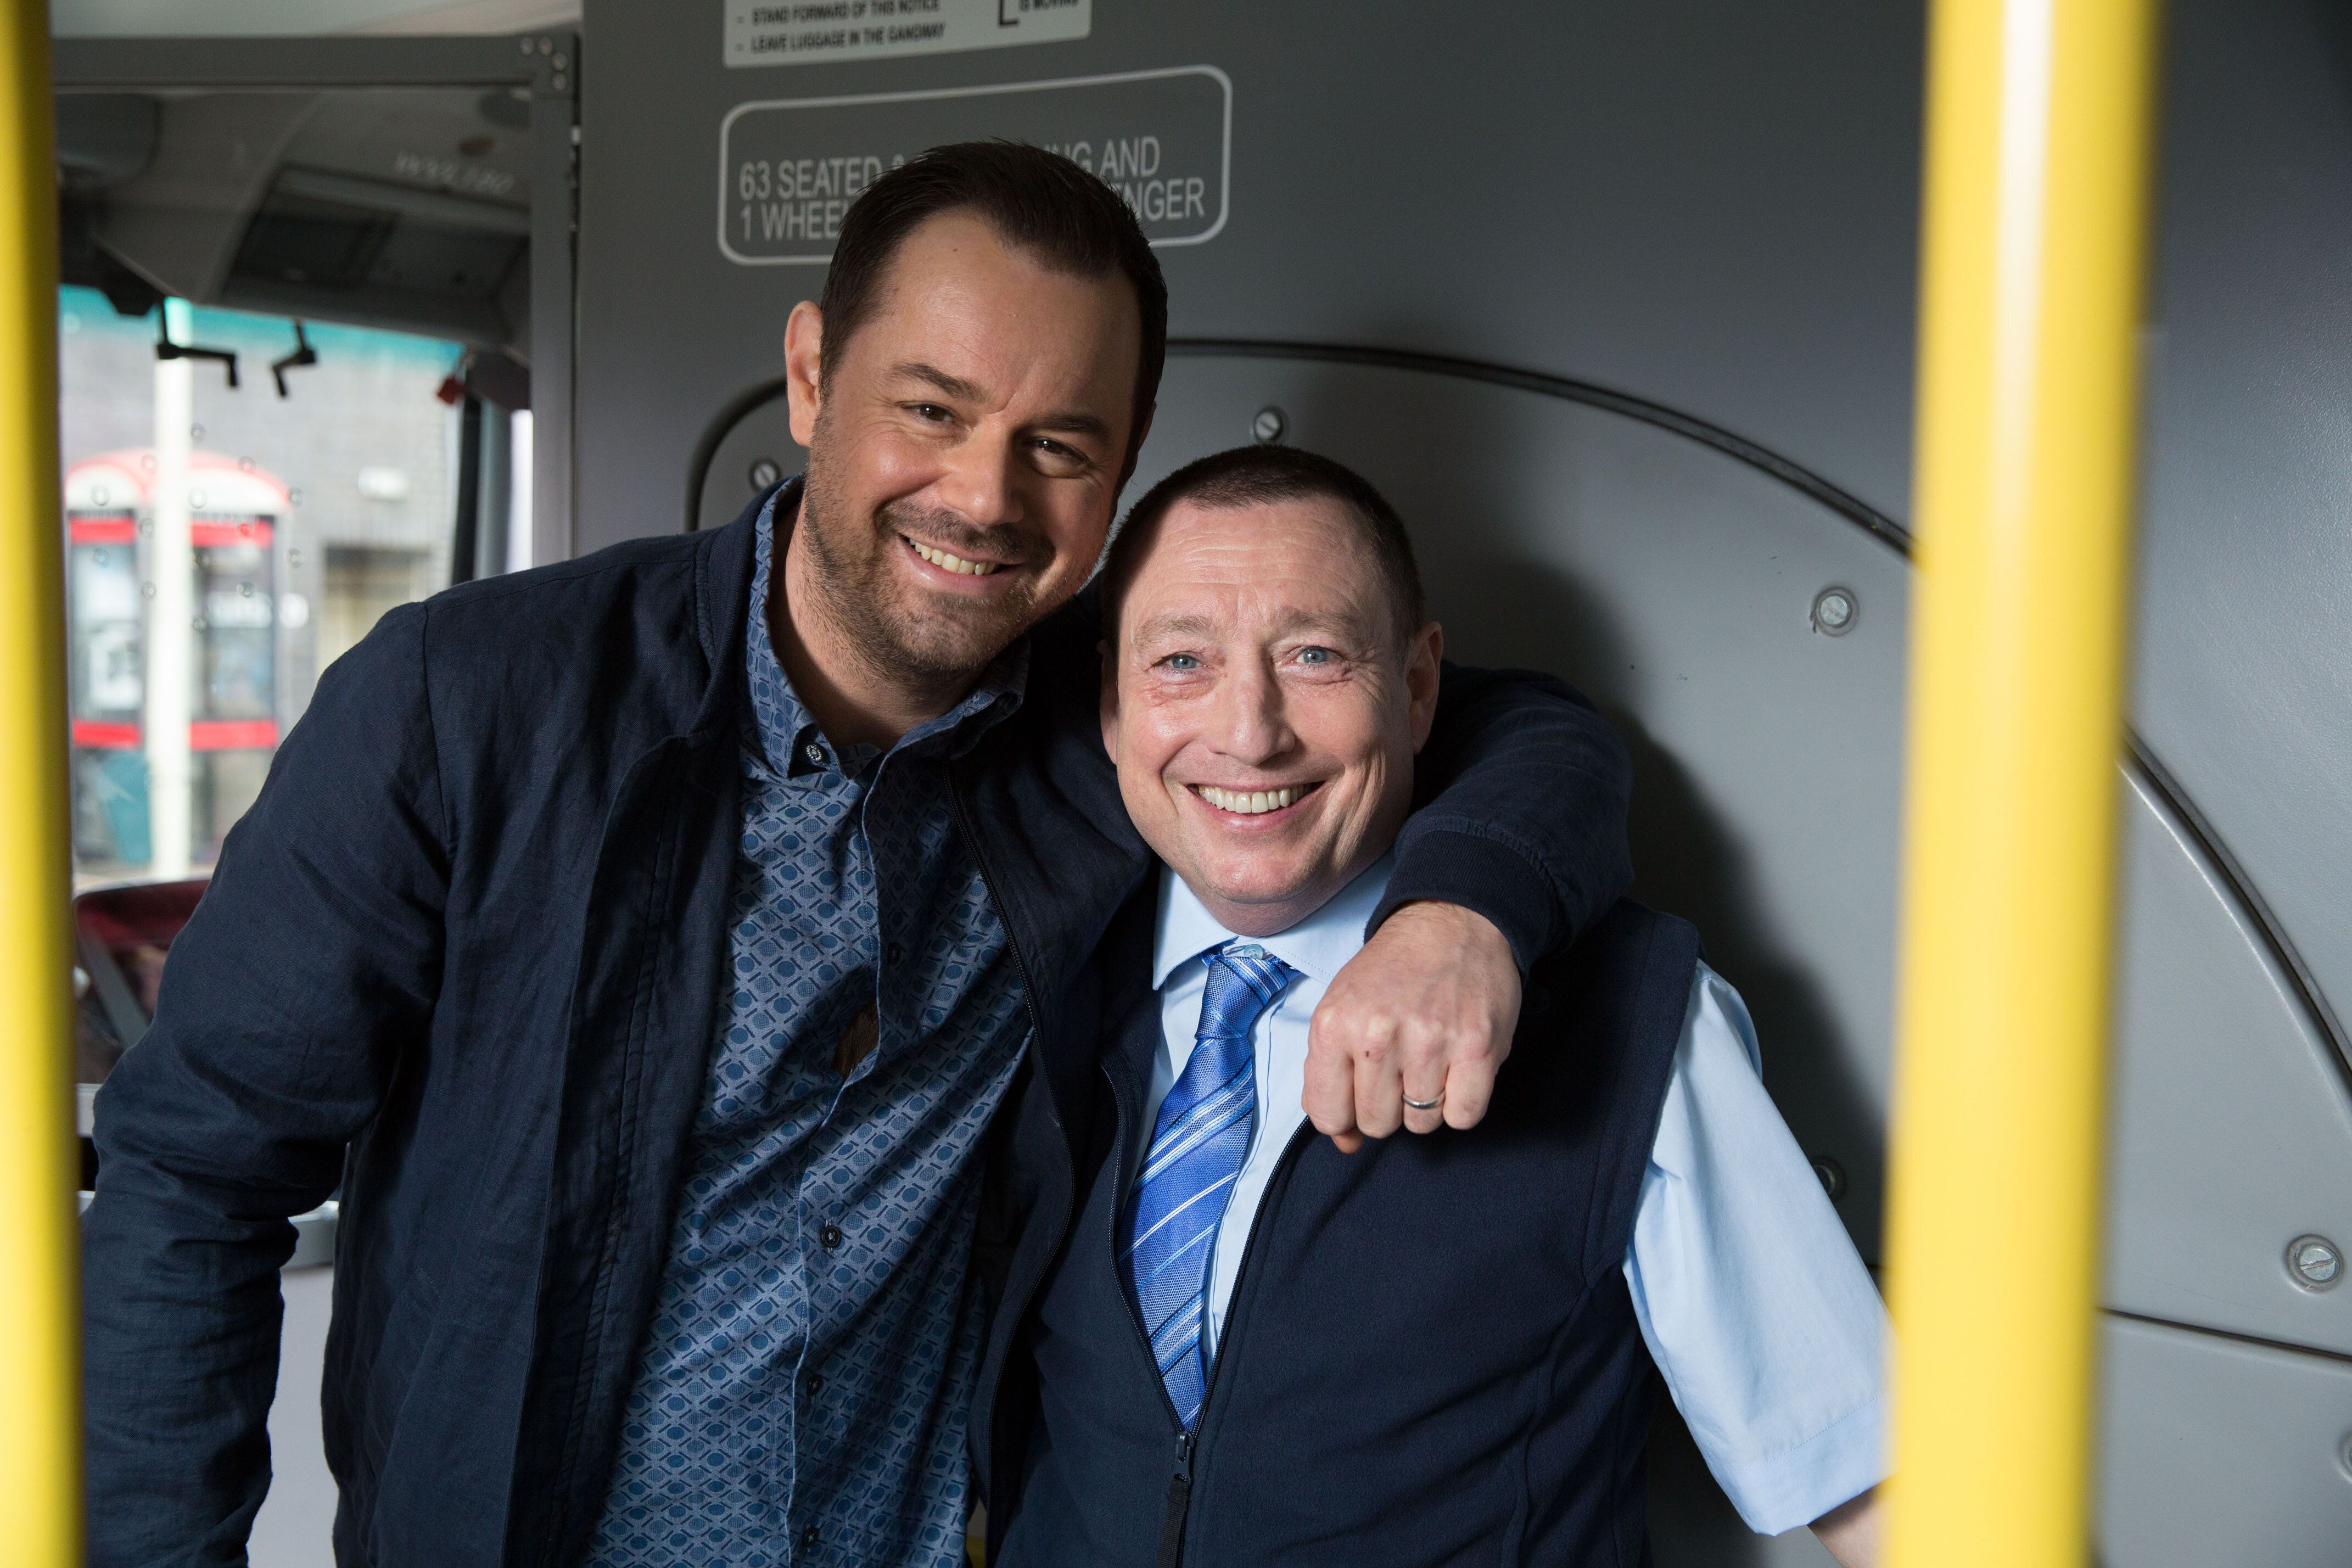 'Grange Hill' star Lee MacDonald appears opposite Danny Dyer in 'EastEnders' (Credit: BBC)